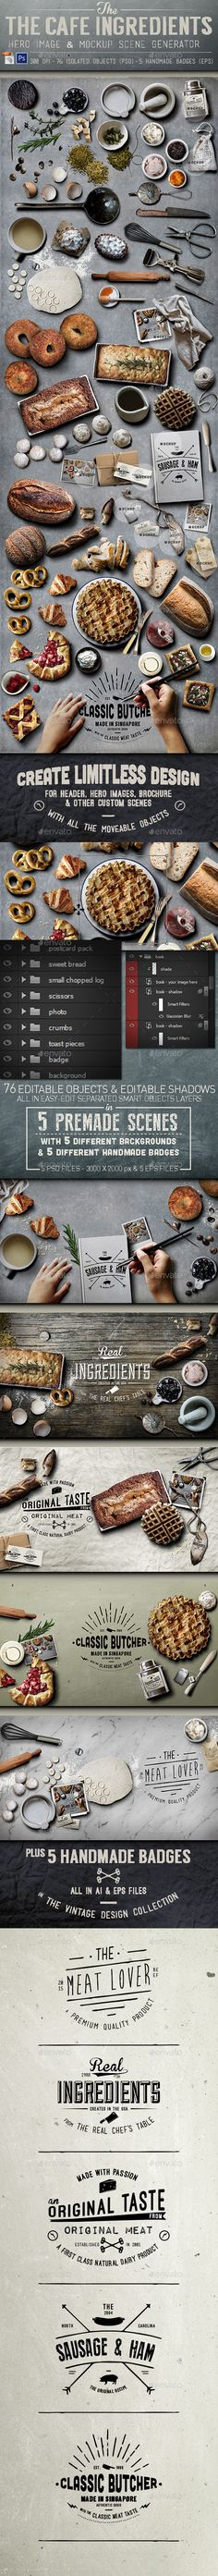 Cafe Ingredients Hero Image #design Download: http://graphicriver.net/item/cafe-ingredients-hero-image/11781215?ref=ksioks